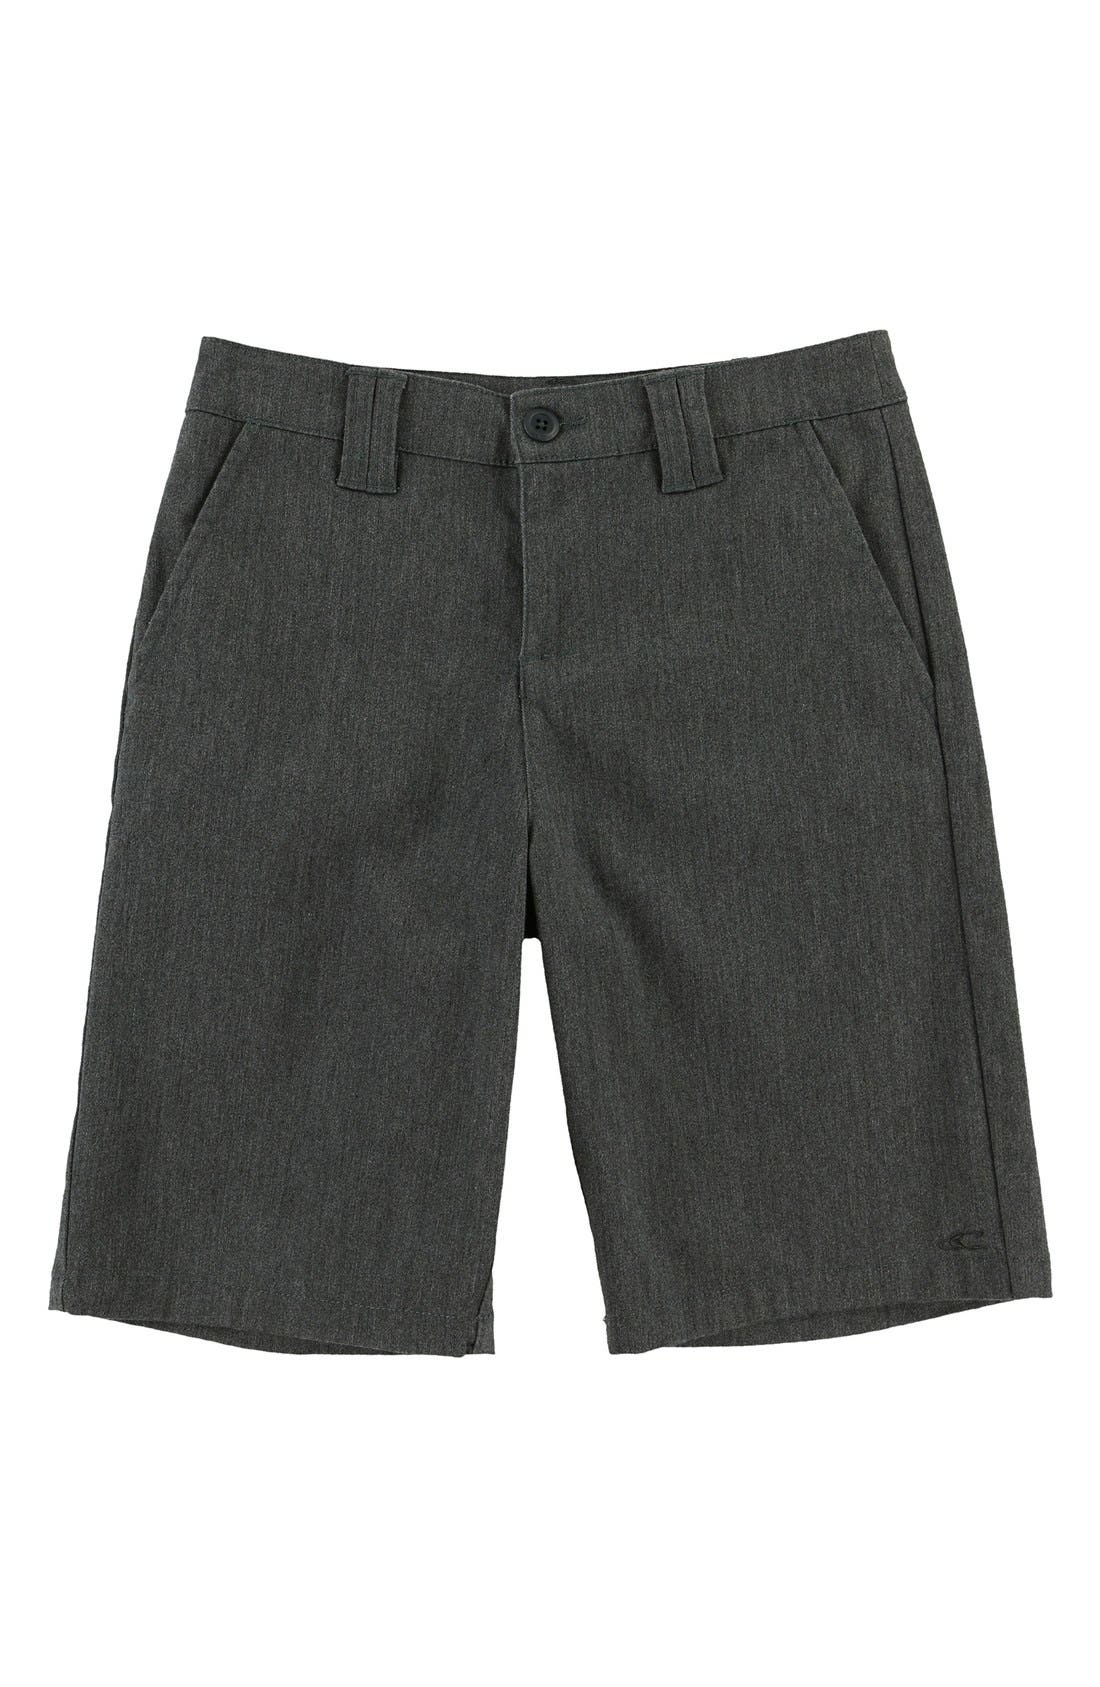 O'Neill Contact Stretch Shorts (Big Boys)